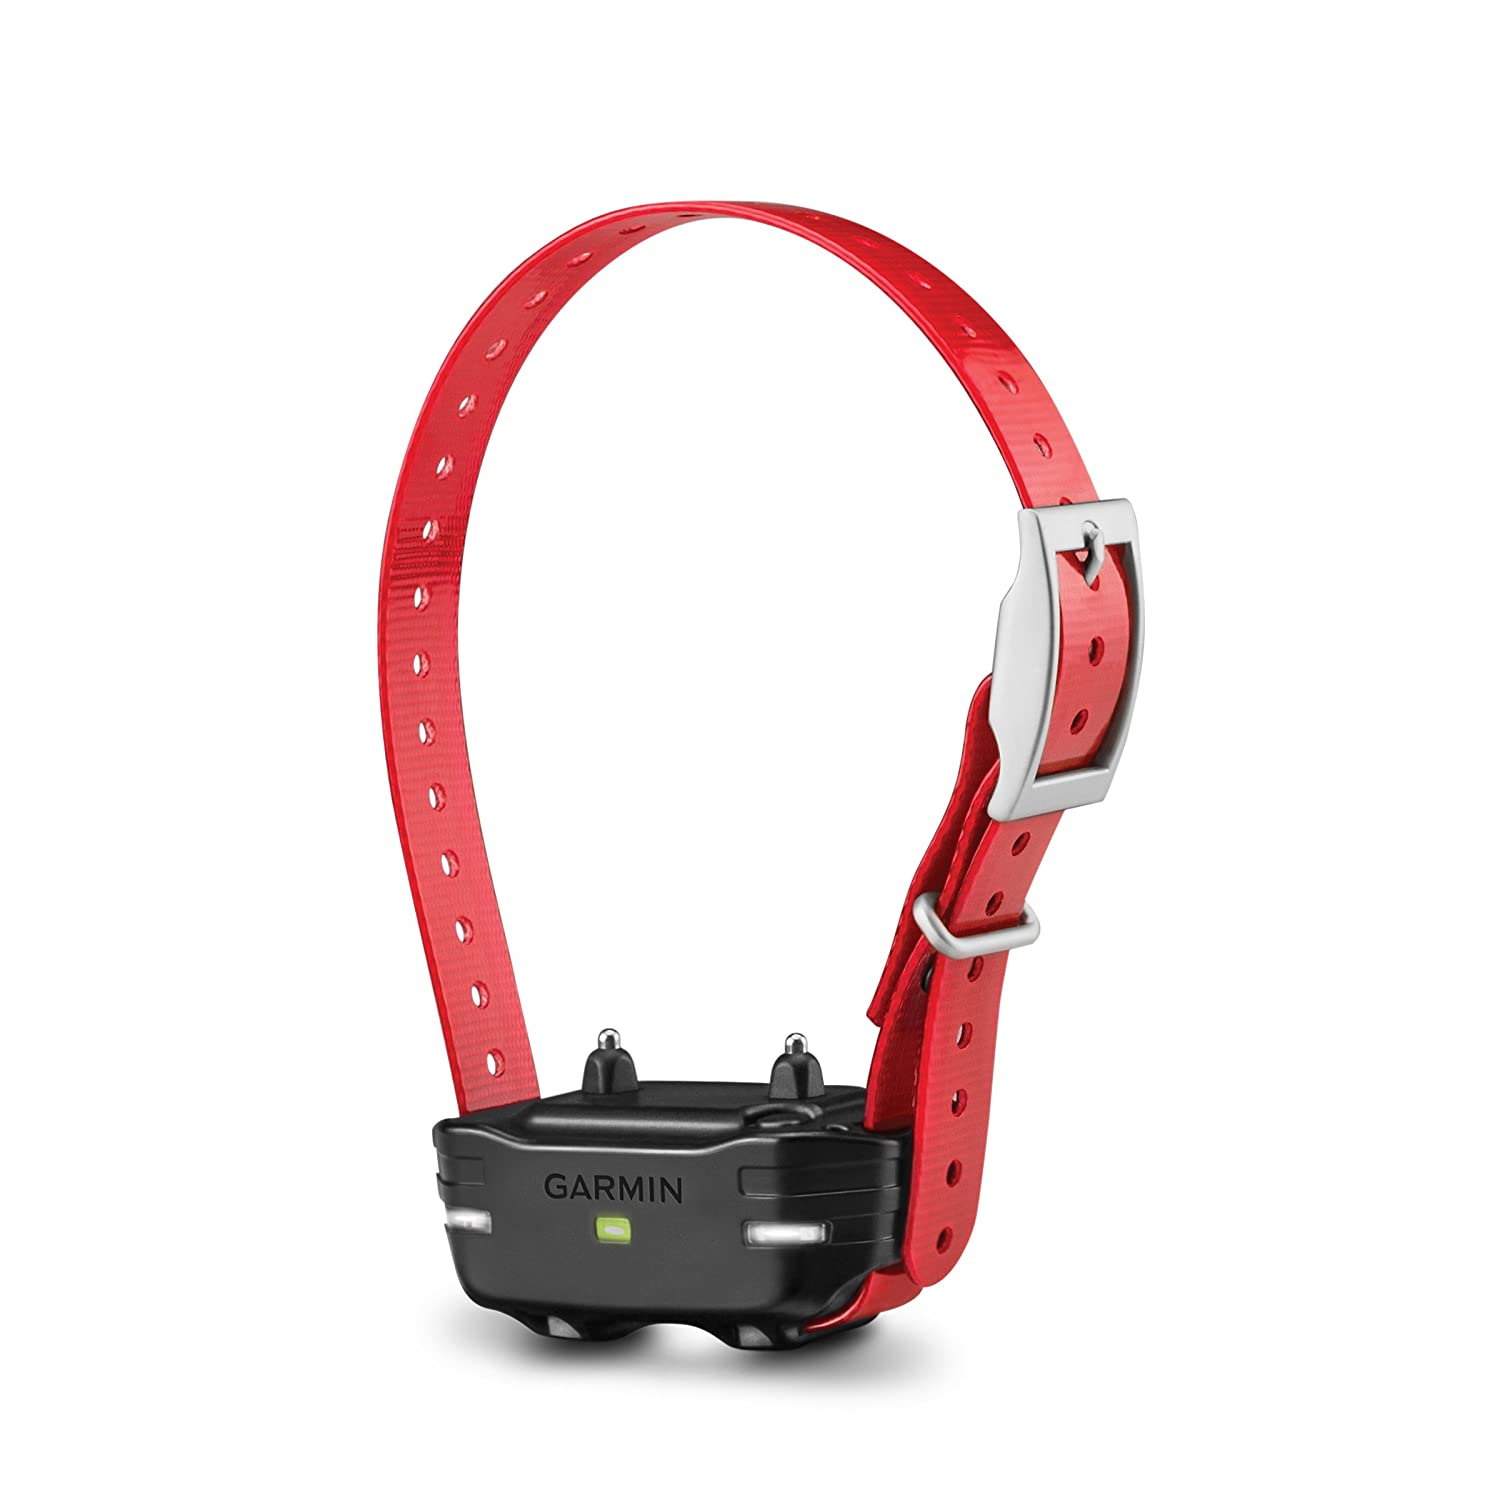 Garmin PT10 Dog Device Red Collar (Pro 70 Pro 550)